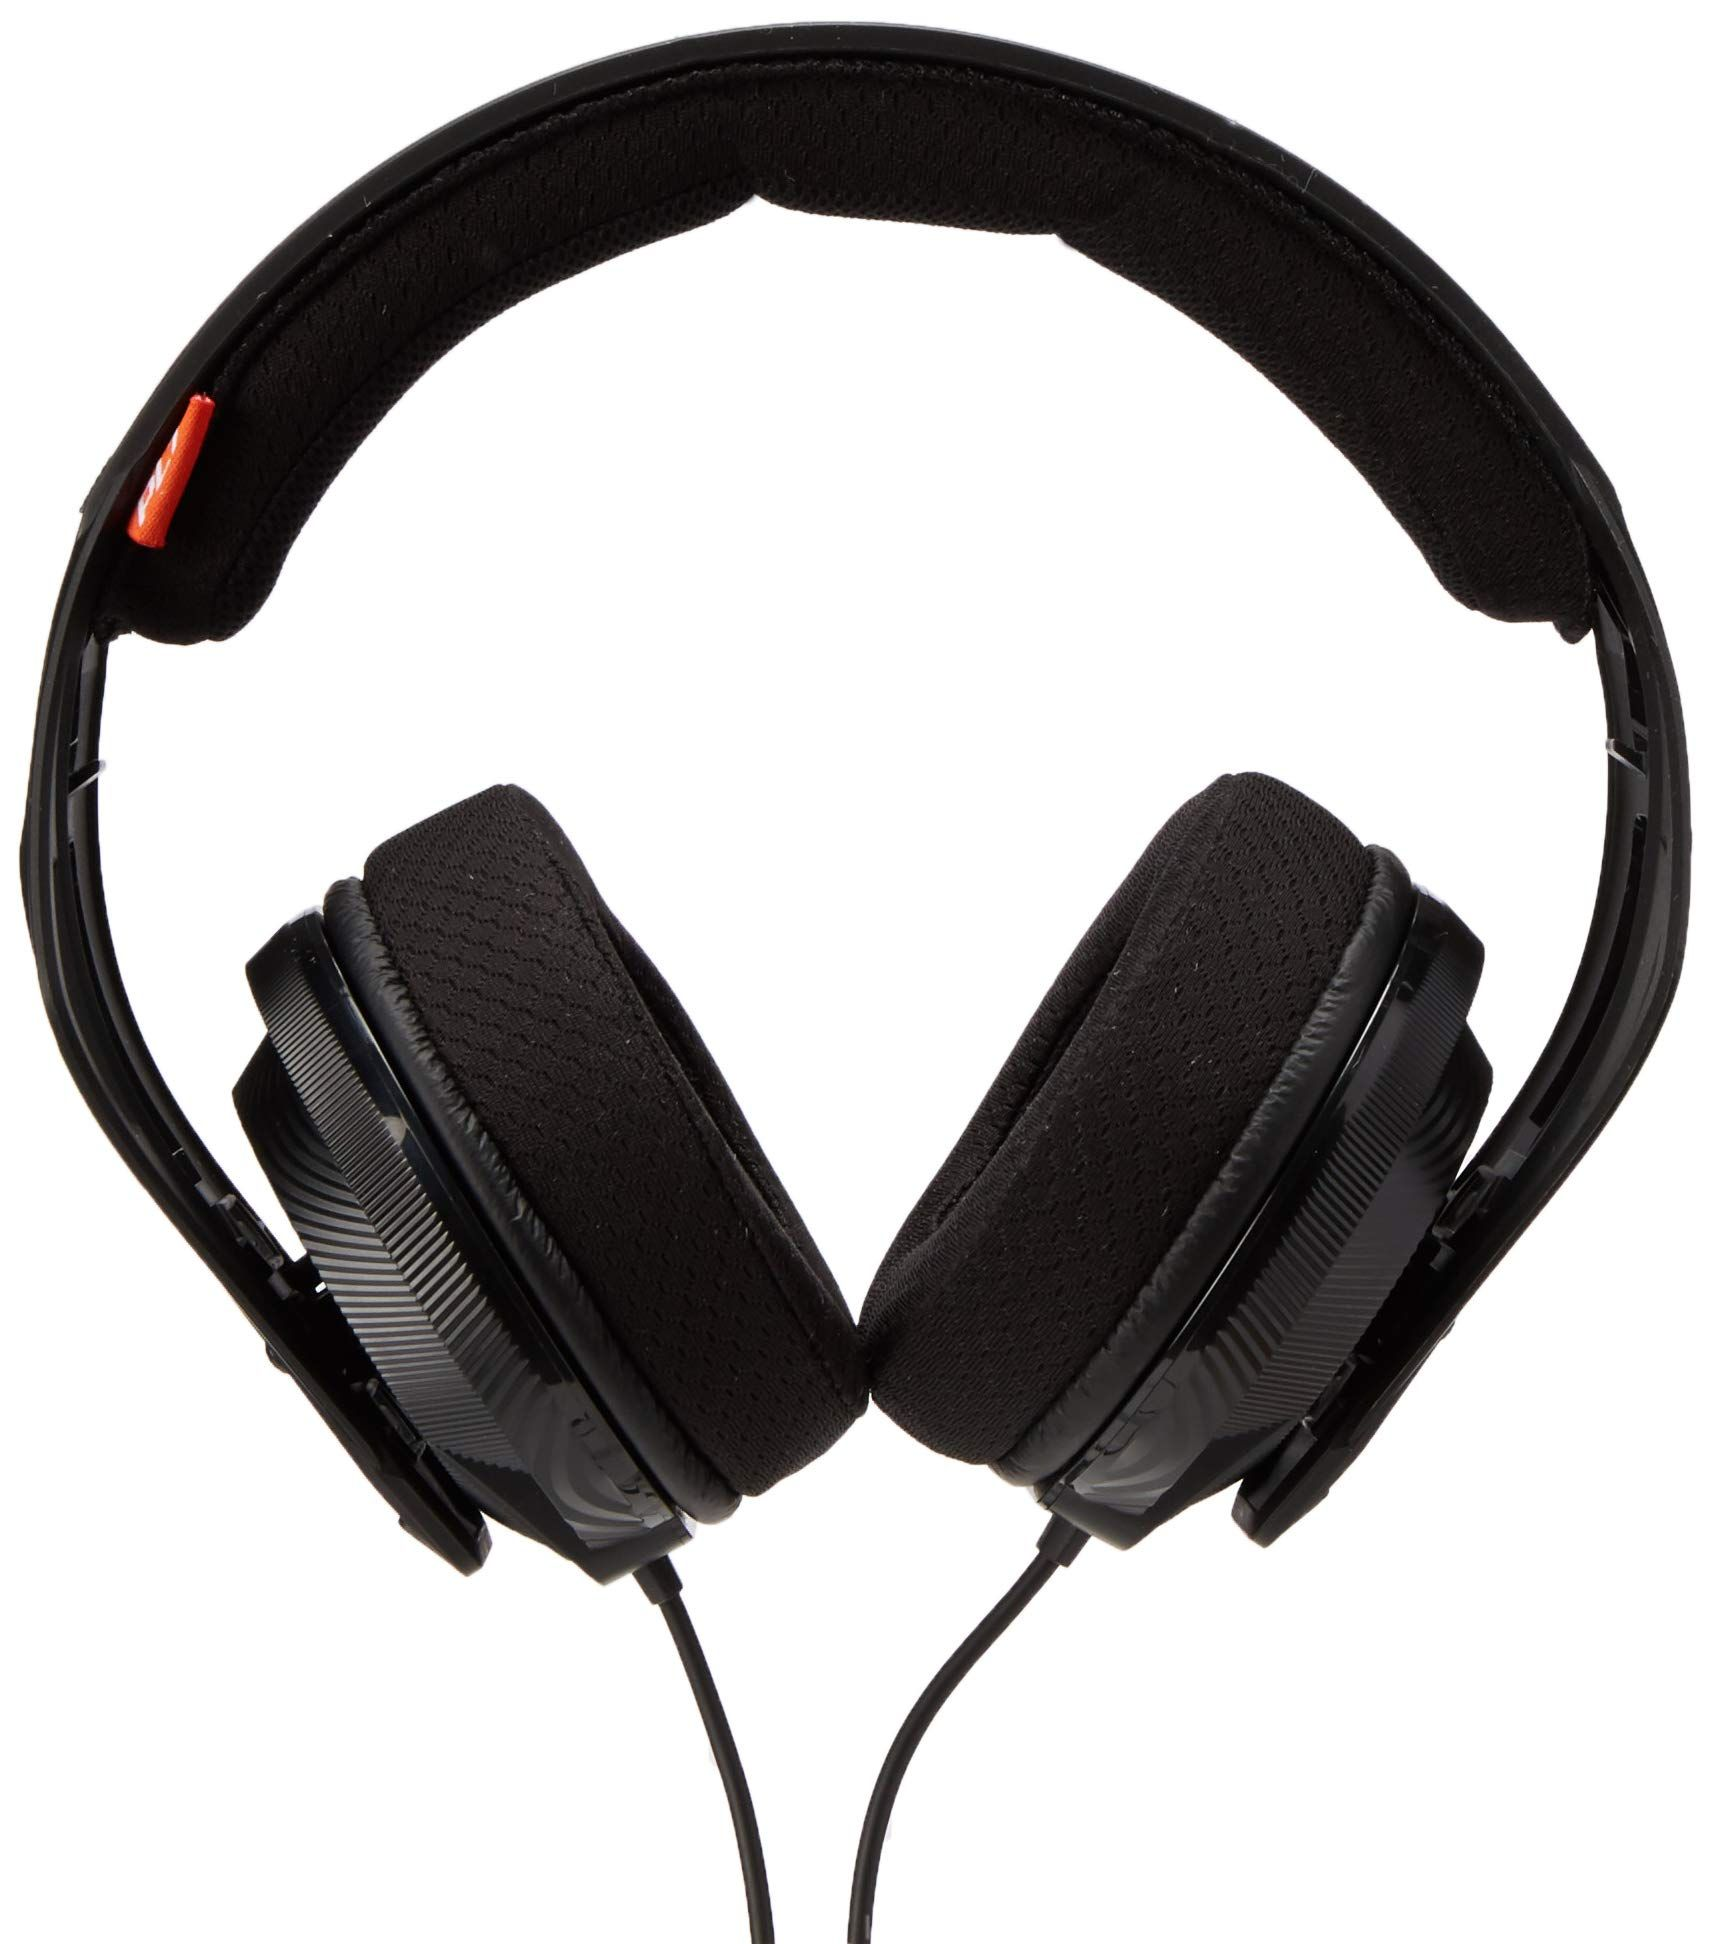 Plantronics Gaming Headset, RIG 400HS Stereo Gaming Headset for PS4